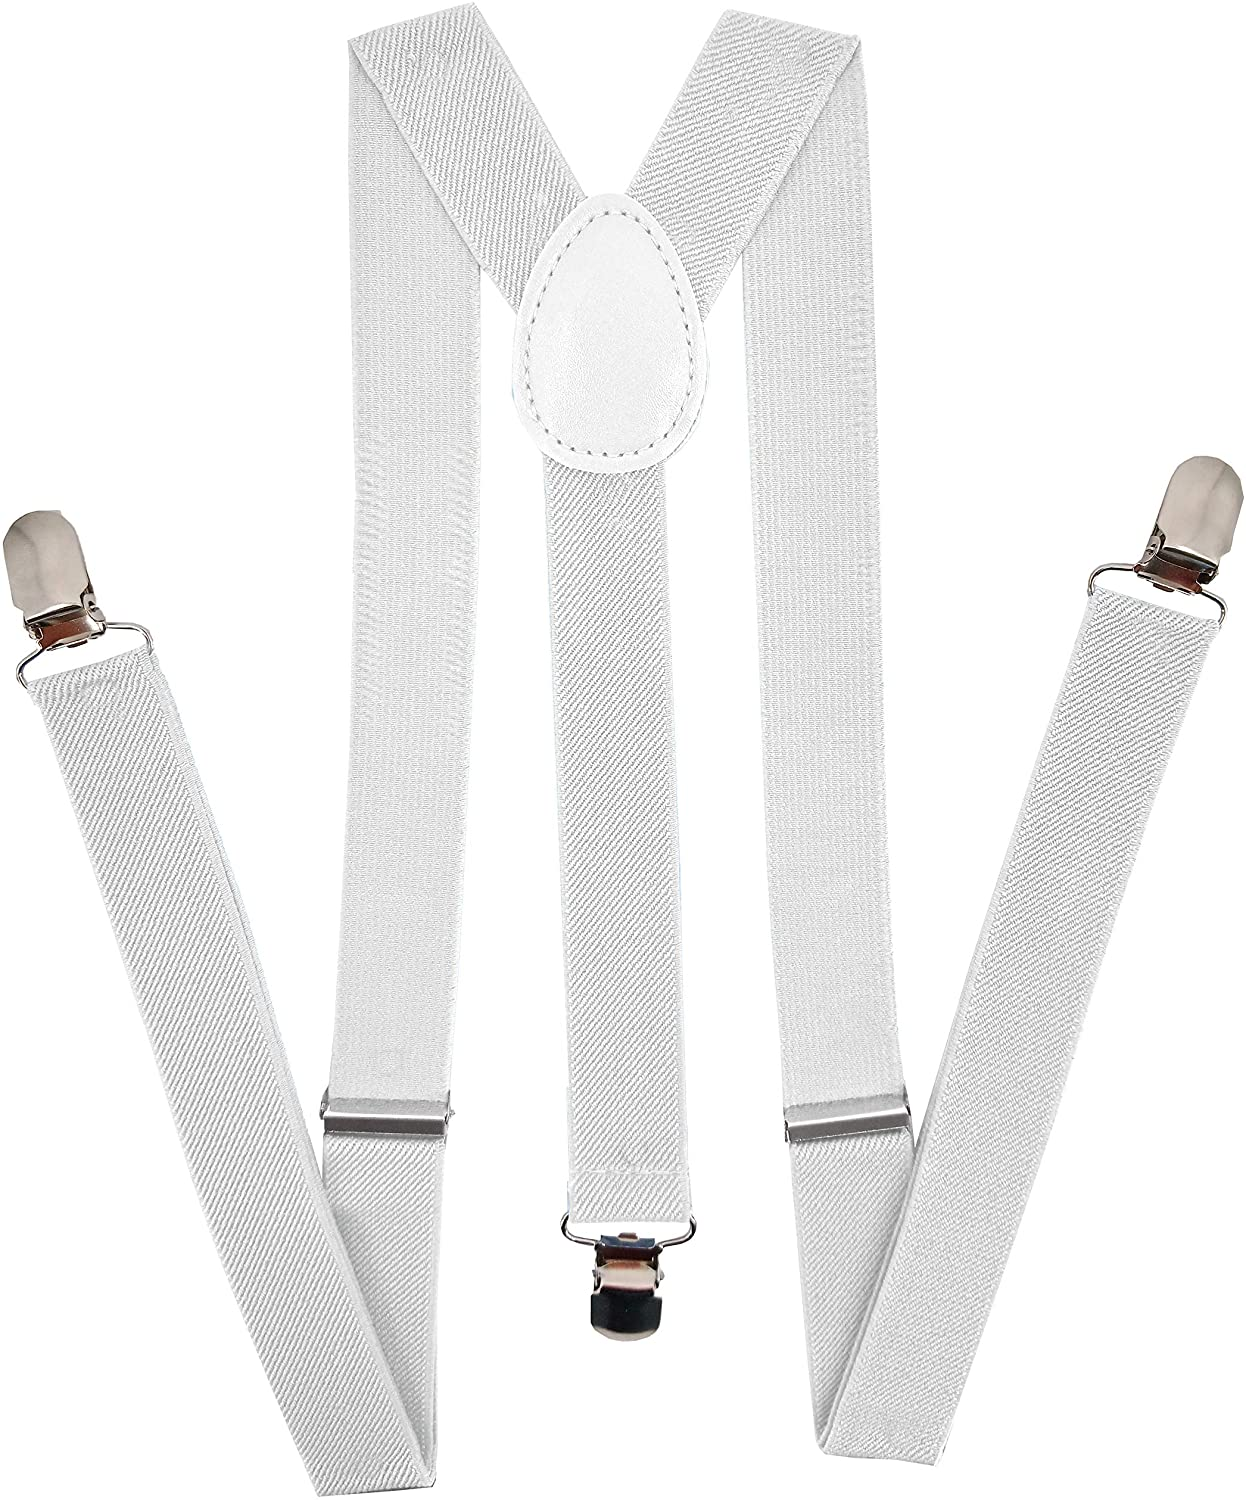 Navisima Suspenders Special Be super welcome price for Kids - Girls Adjustable